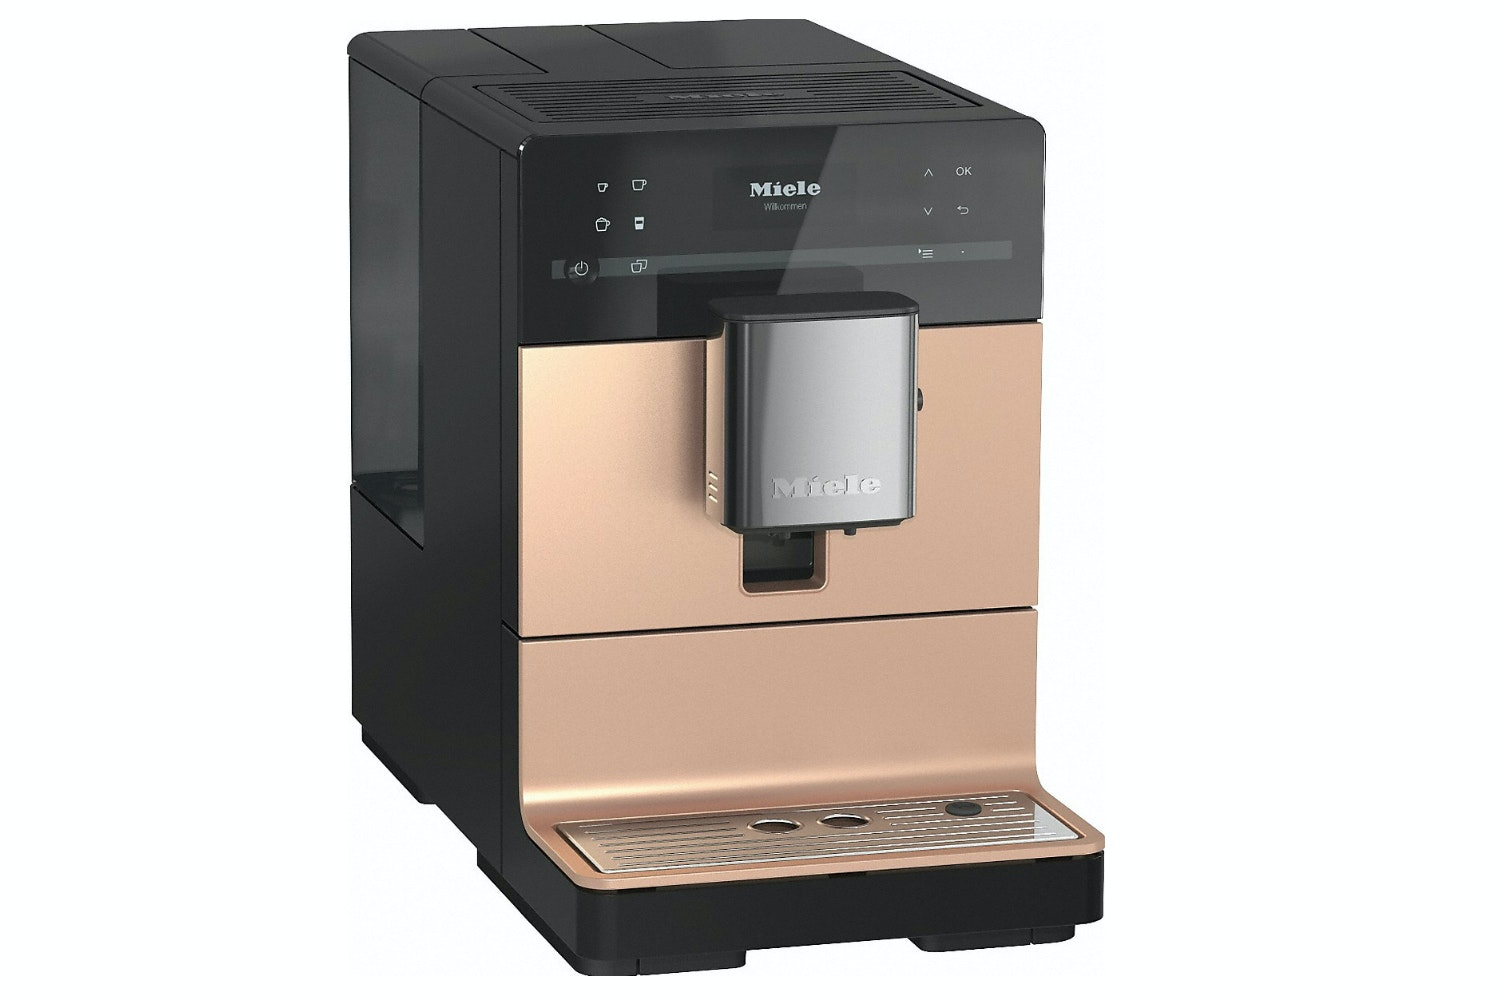 Miele CM 5500  Countertop coffee machine   with OneTouch for Two for perfect coffee enjoyment